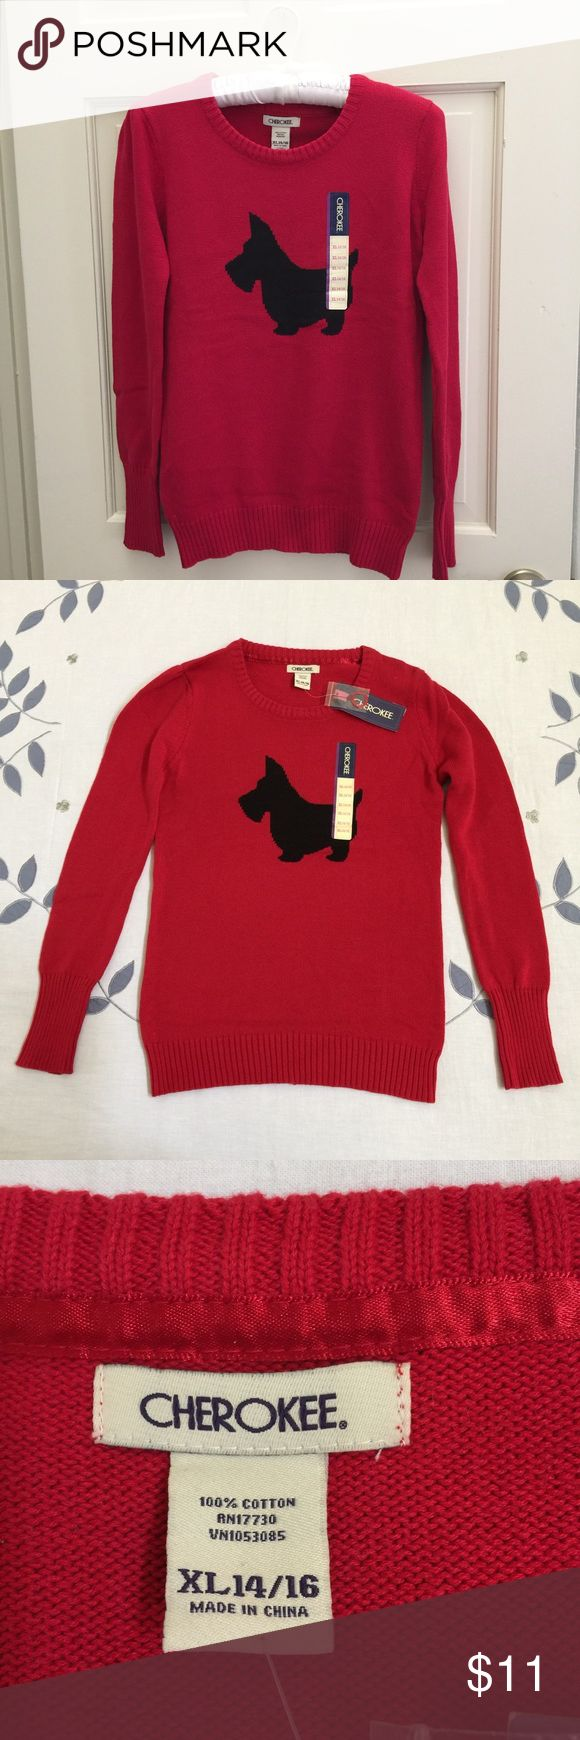 Girls sweater size XL Girls red sweater 100% cotton, size XL Cherokee Shirts & Tops Sweaters